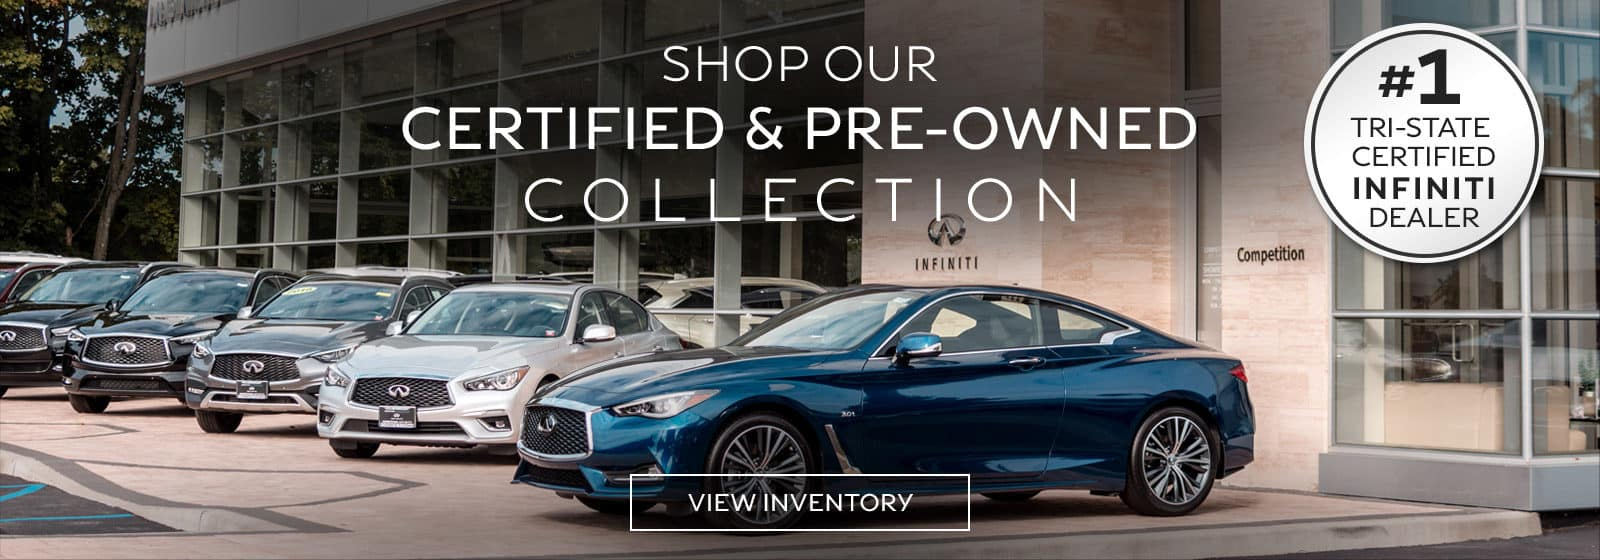 Homepage-Slider-INFINITI-Shop-Certified-Preowned (2)